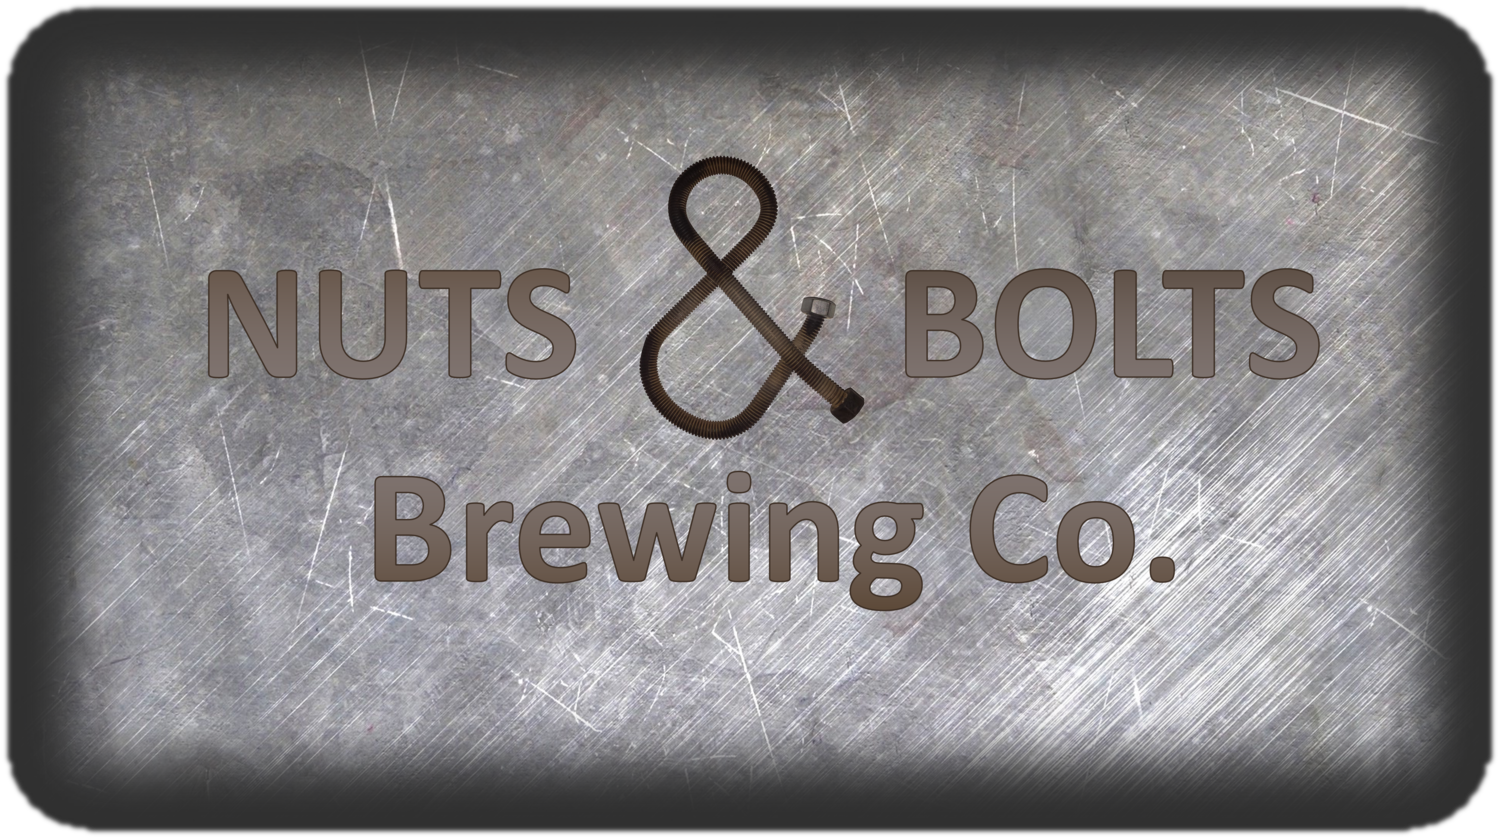 Nuts and Bolts Brewing